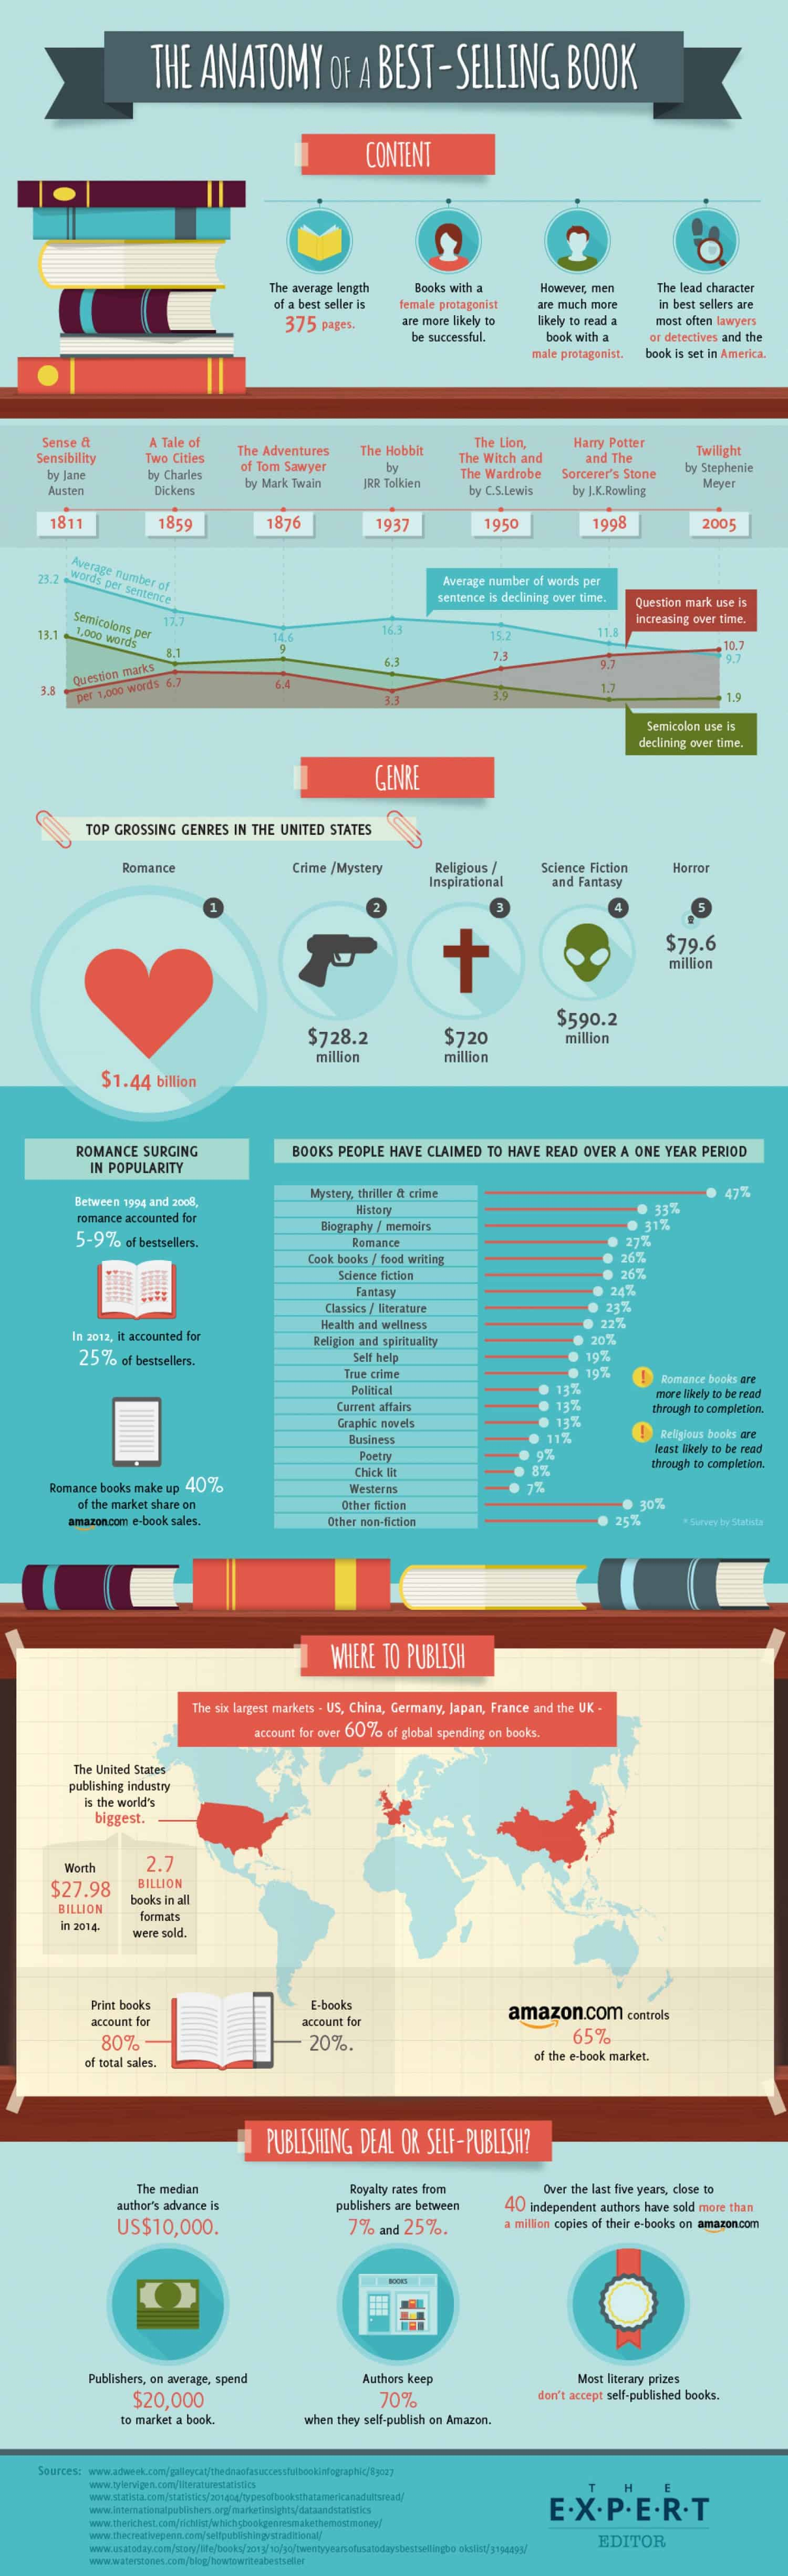 The Anatomy of a Best-Selling Book | Daily Infographic